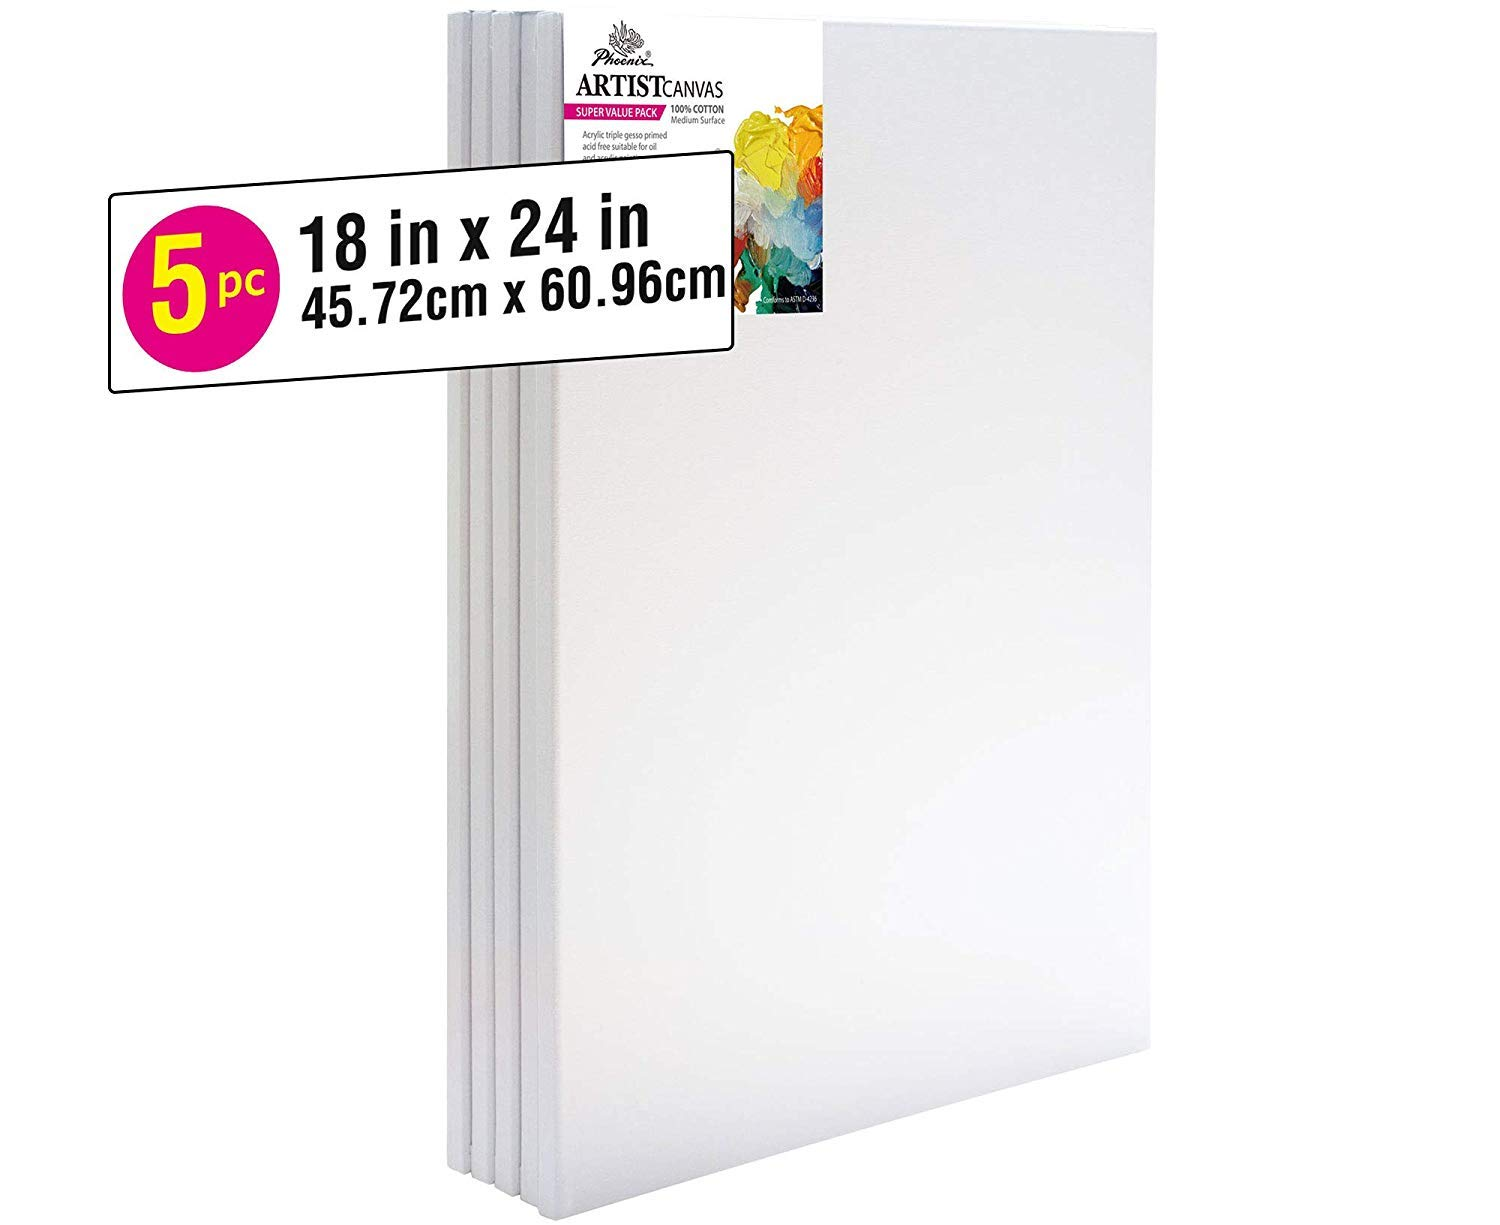 PHOENIX Pre Stretched Canvas for Painting - 18x24 Inch / 5 Pack - 5/8 Inch Profile of Super Value Pack for Acrylics, Oils & Other Painting Media